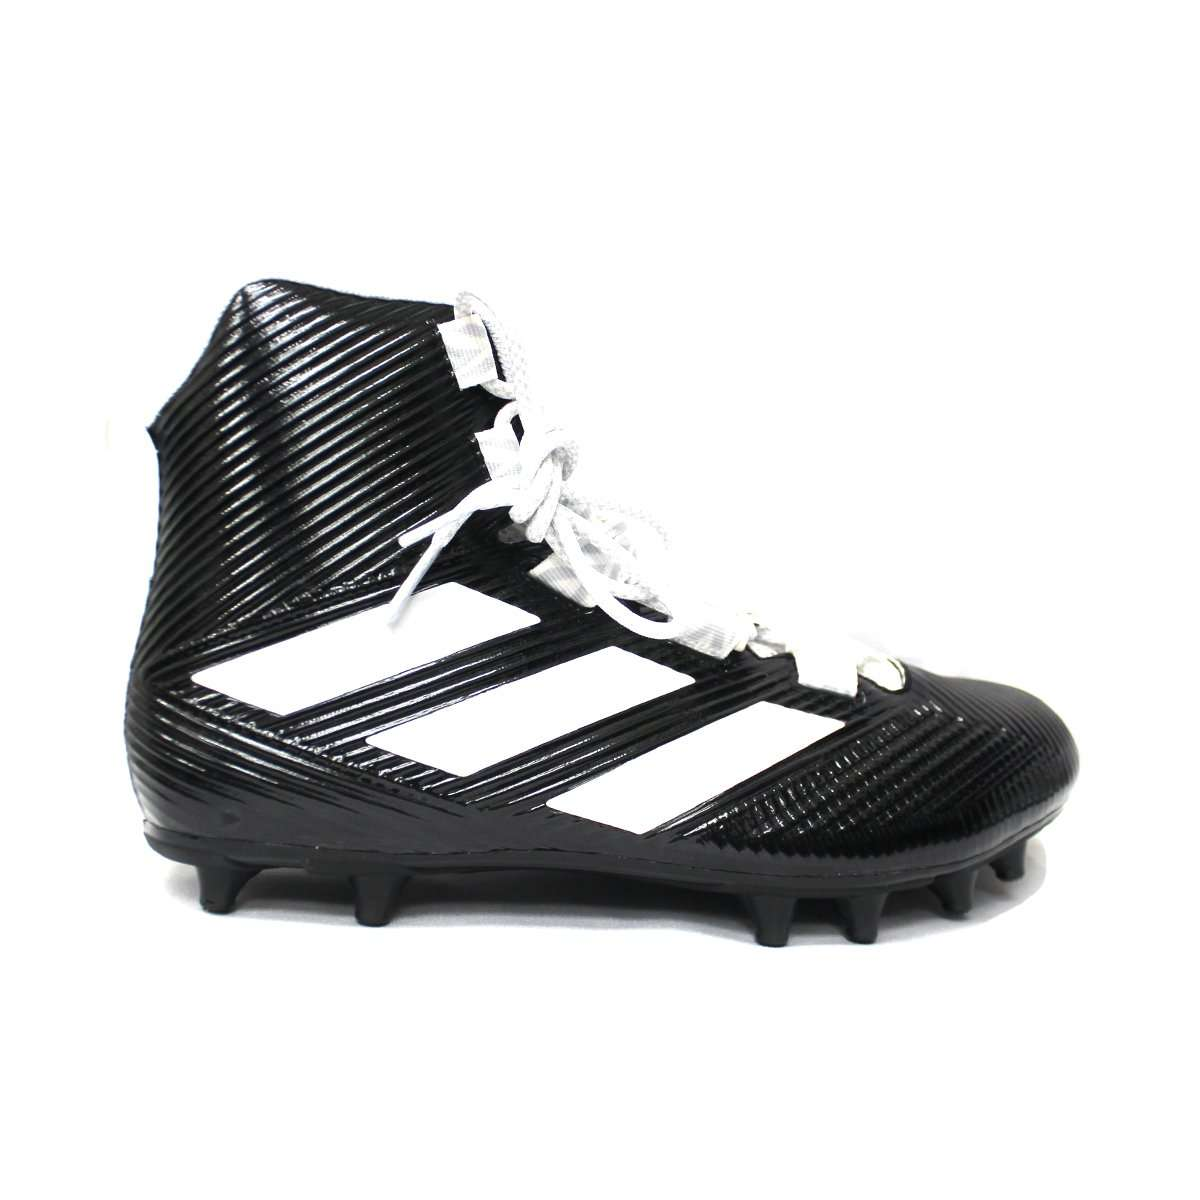 5c868bc56 adidas Freak Carbon High Wide 2E Football Cleats - 10.5 Wide / Black/White